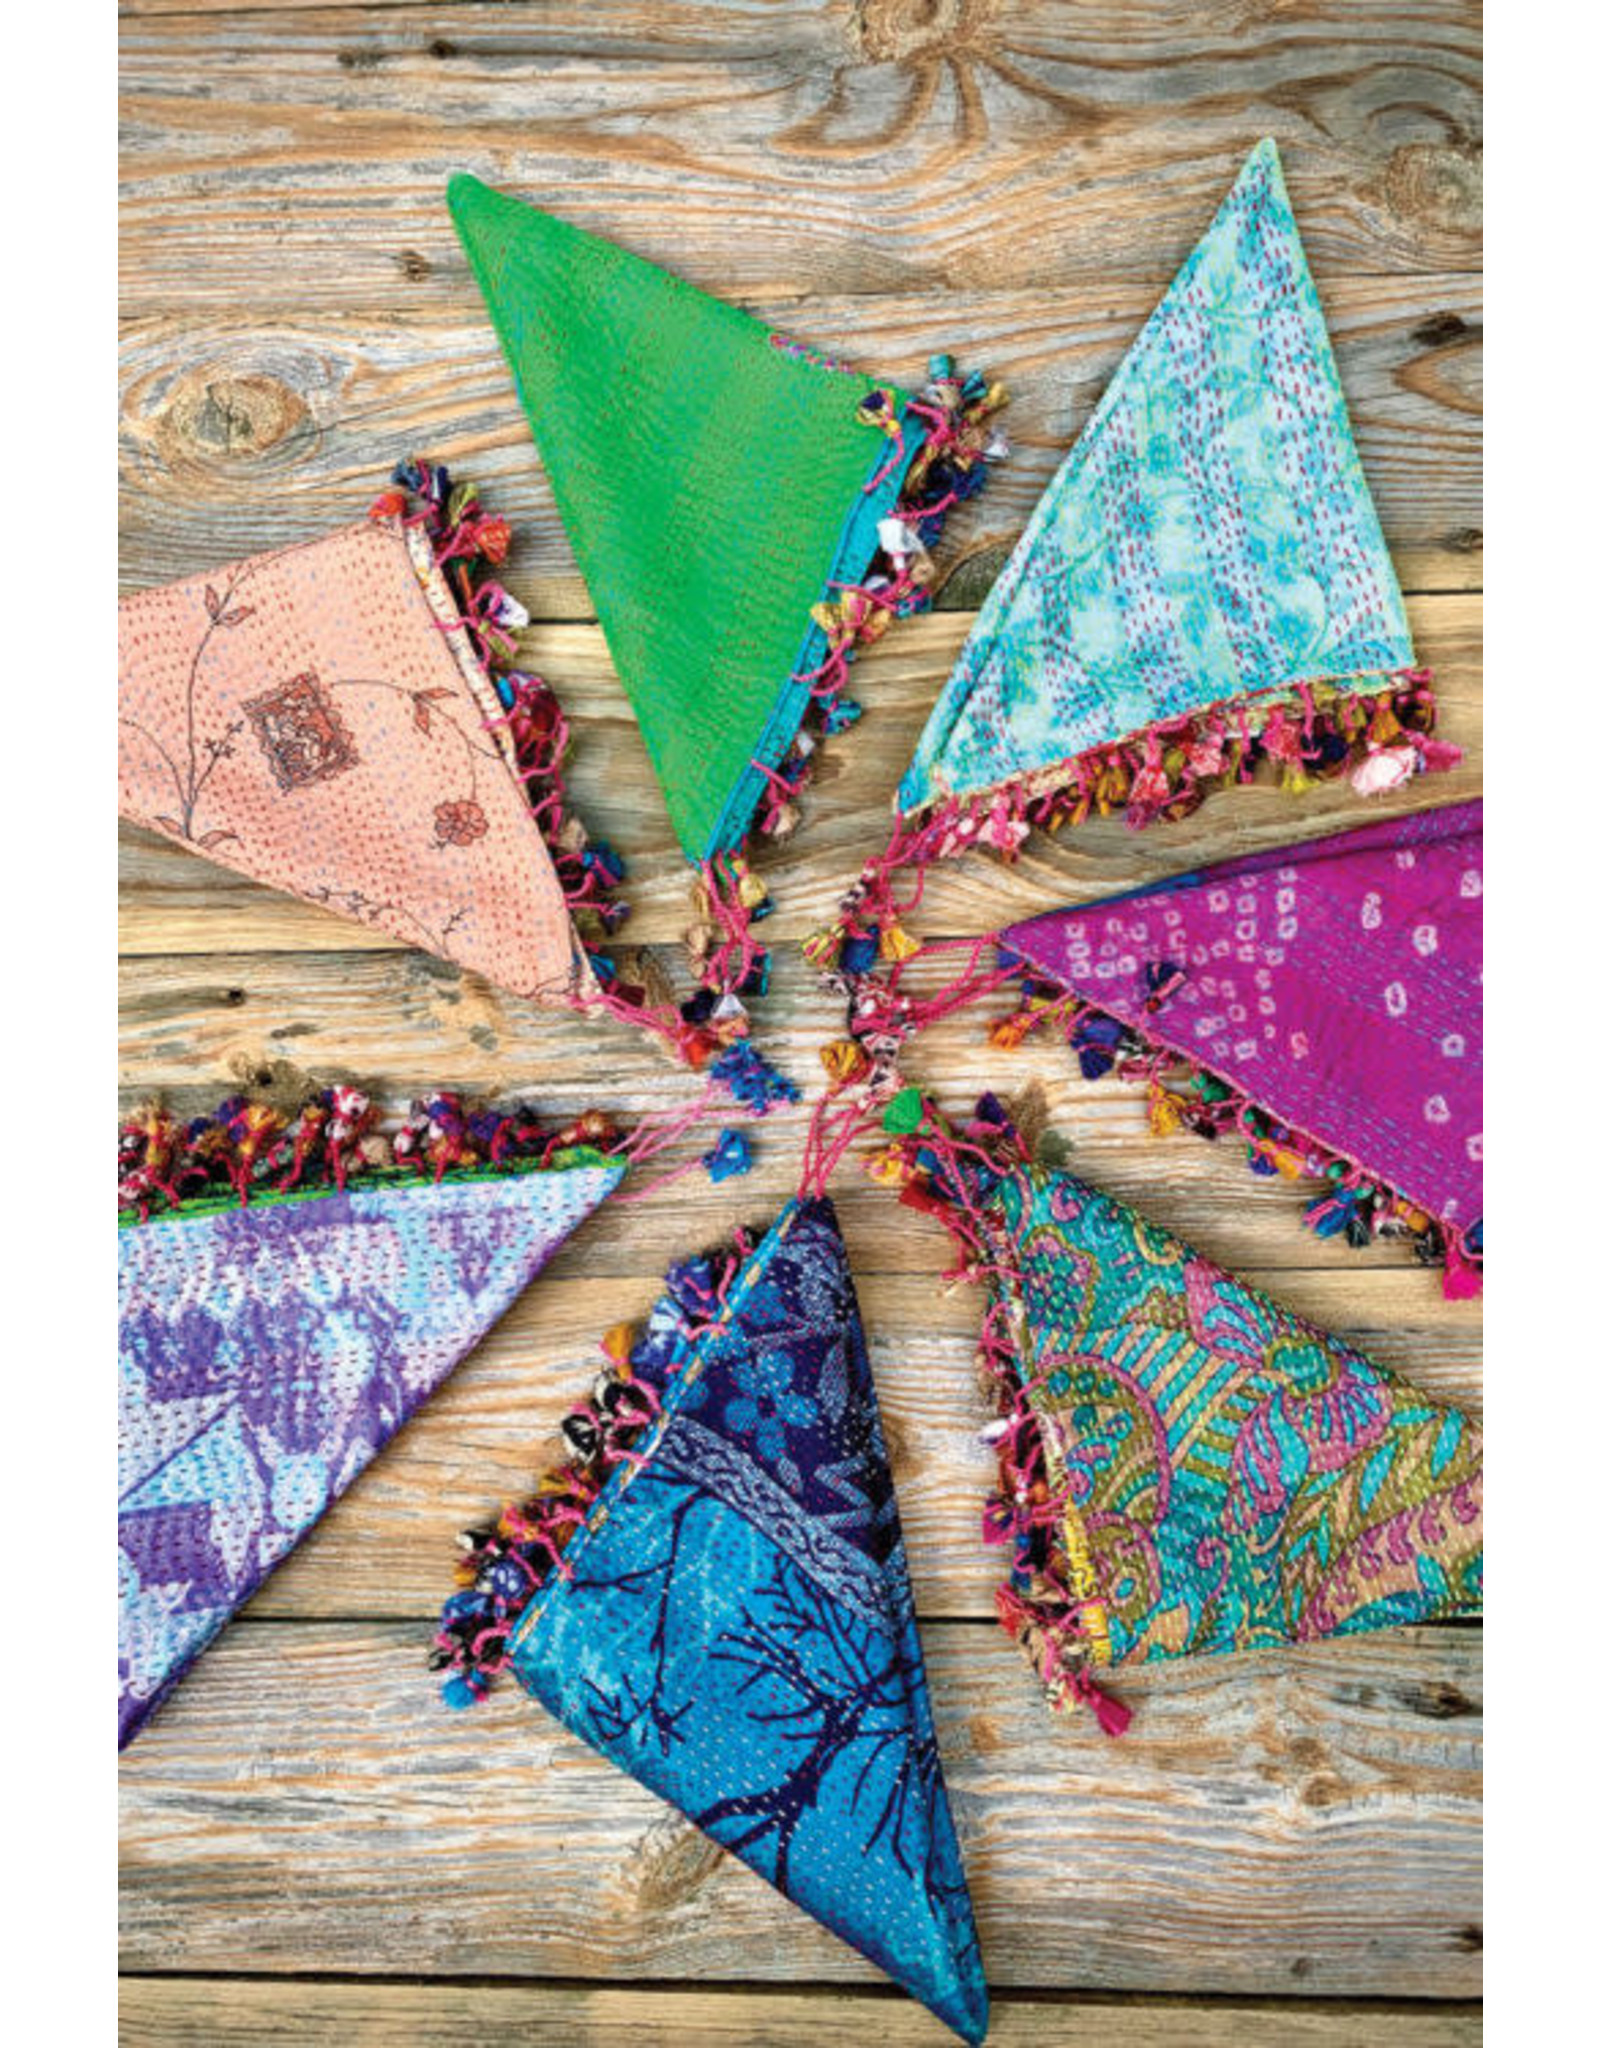 Recycled Silk Kantha Scarves, Square w/ Tassels